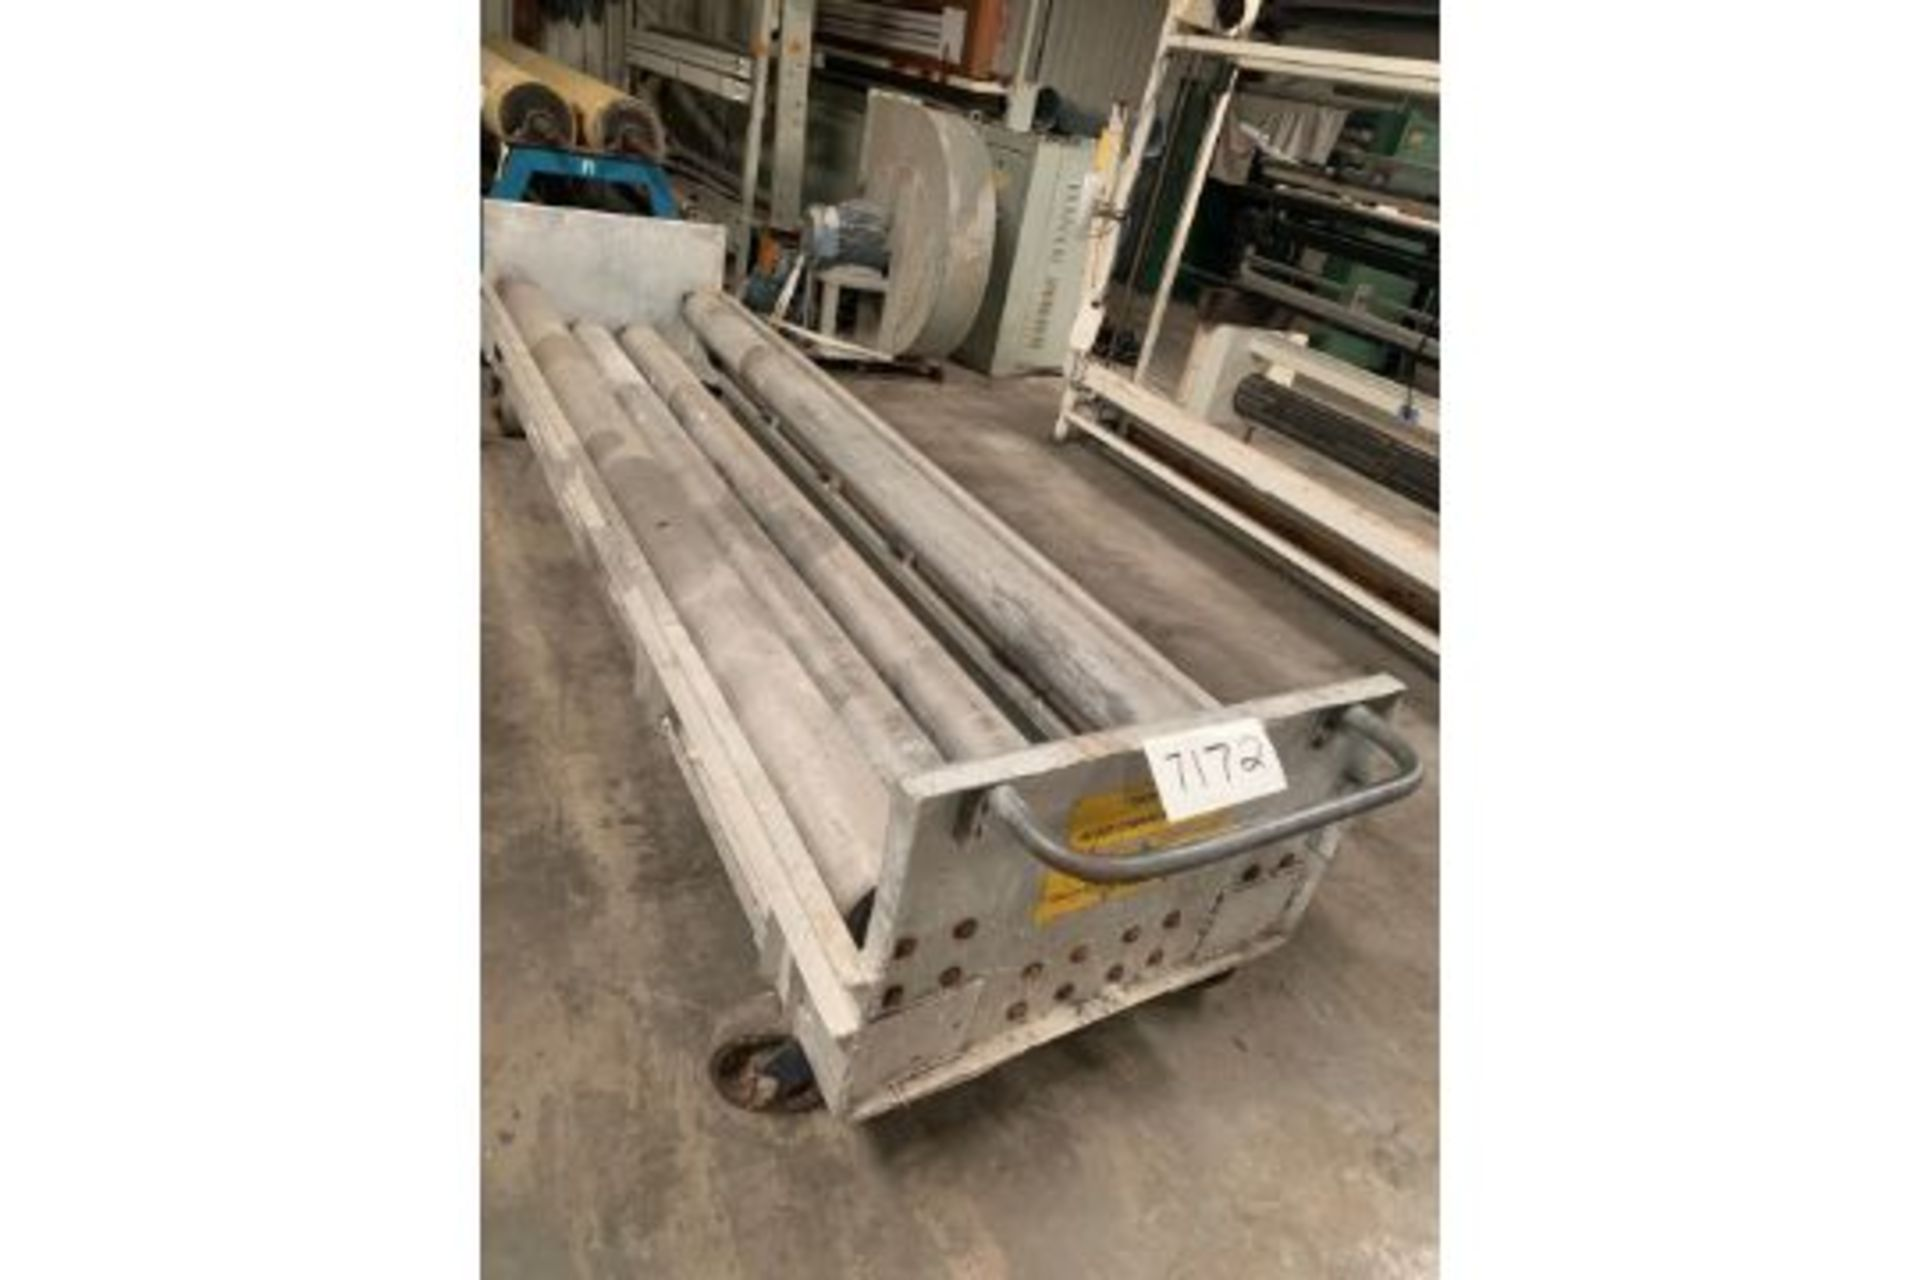 Lot 21122 - Four roll textile unwind cradle with idler rolls 130'' inches long, can handle roll diameters of 12""